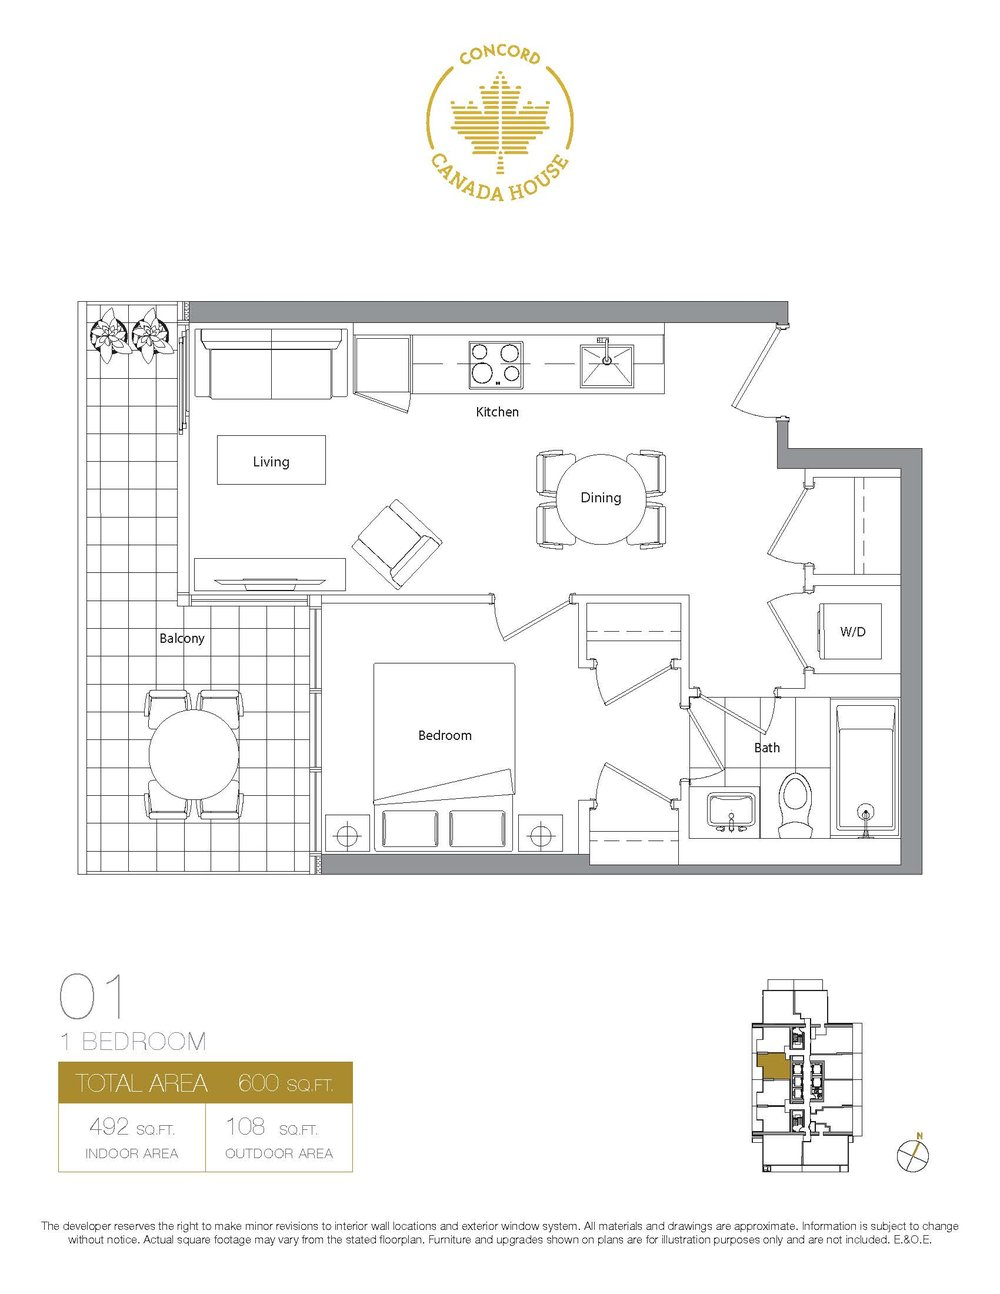 Blk22_B_Lower_Floorplans_LR_062817 1.jpg